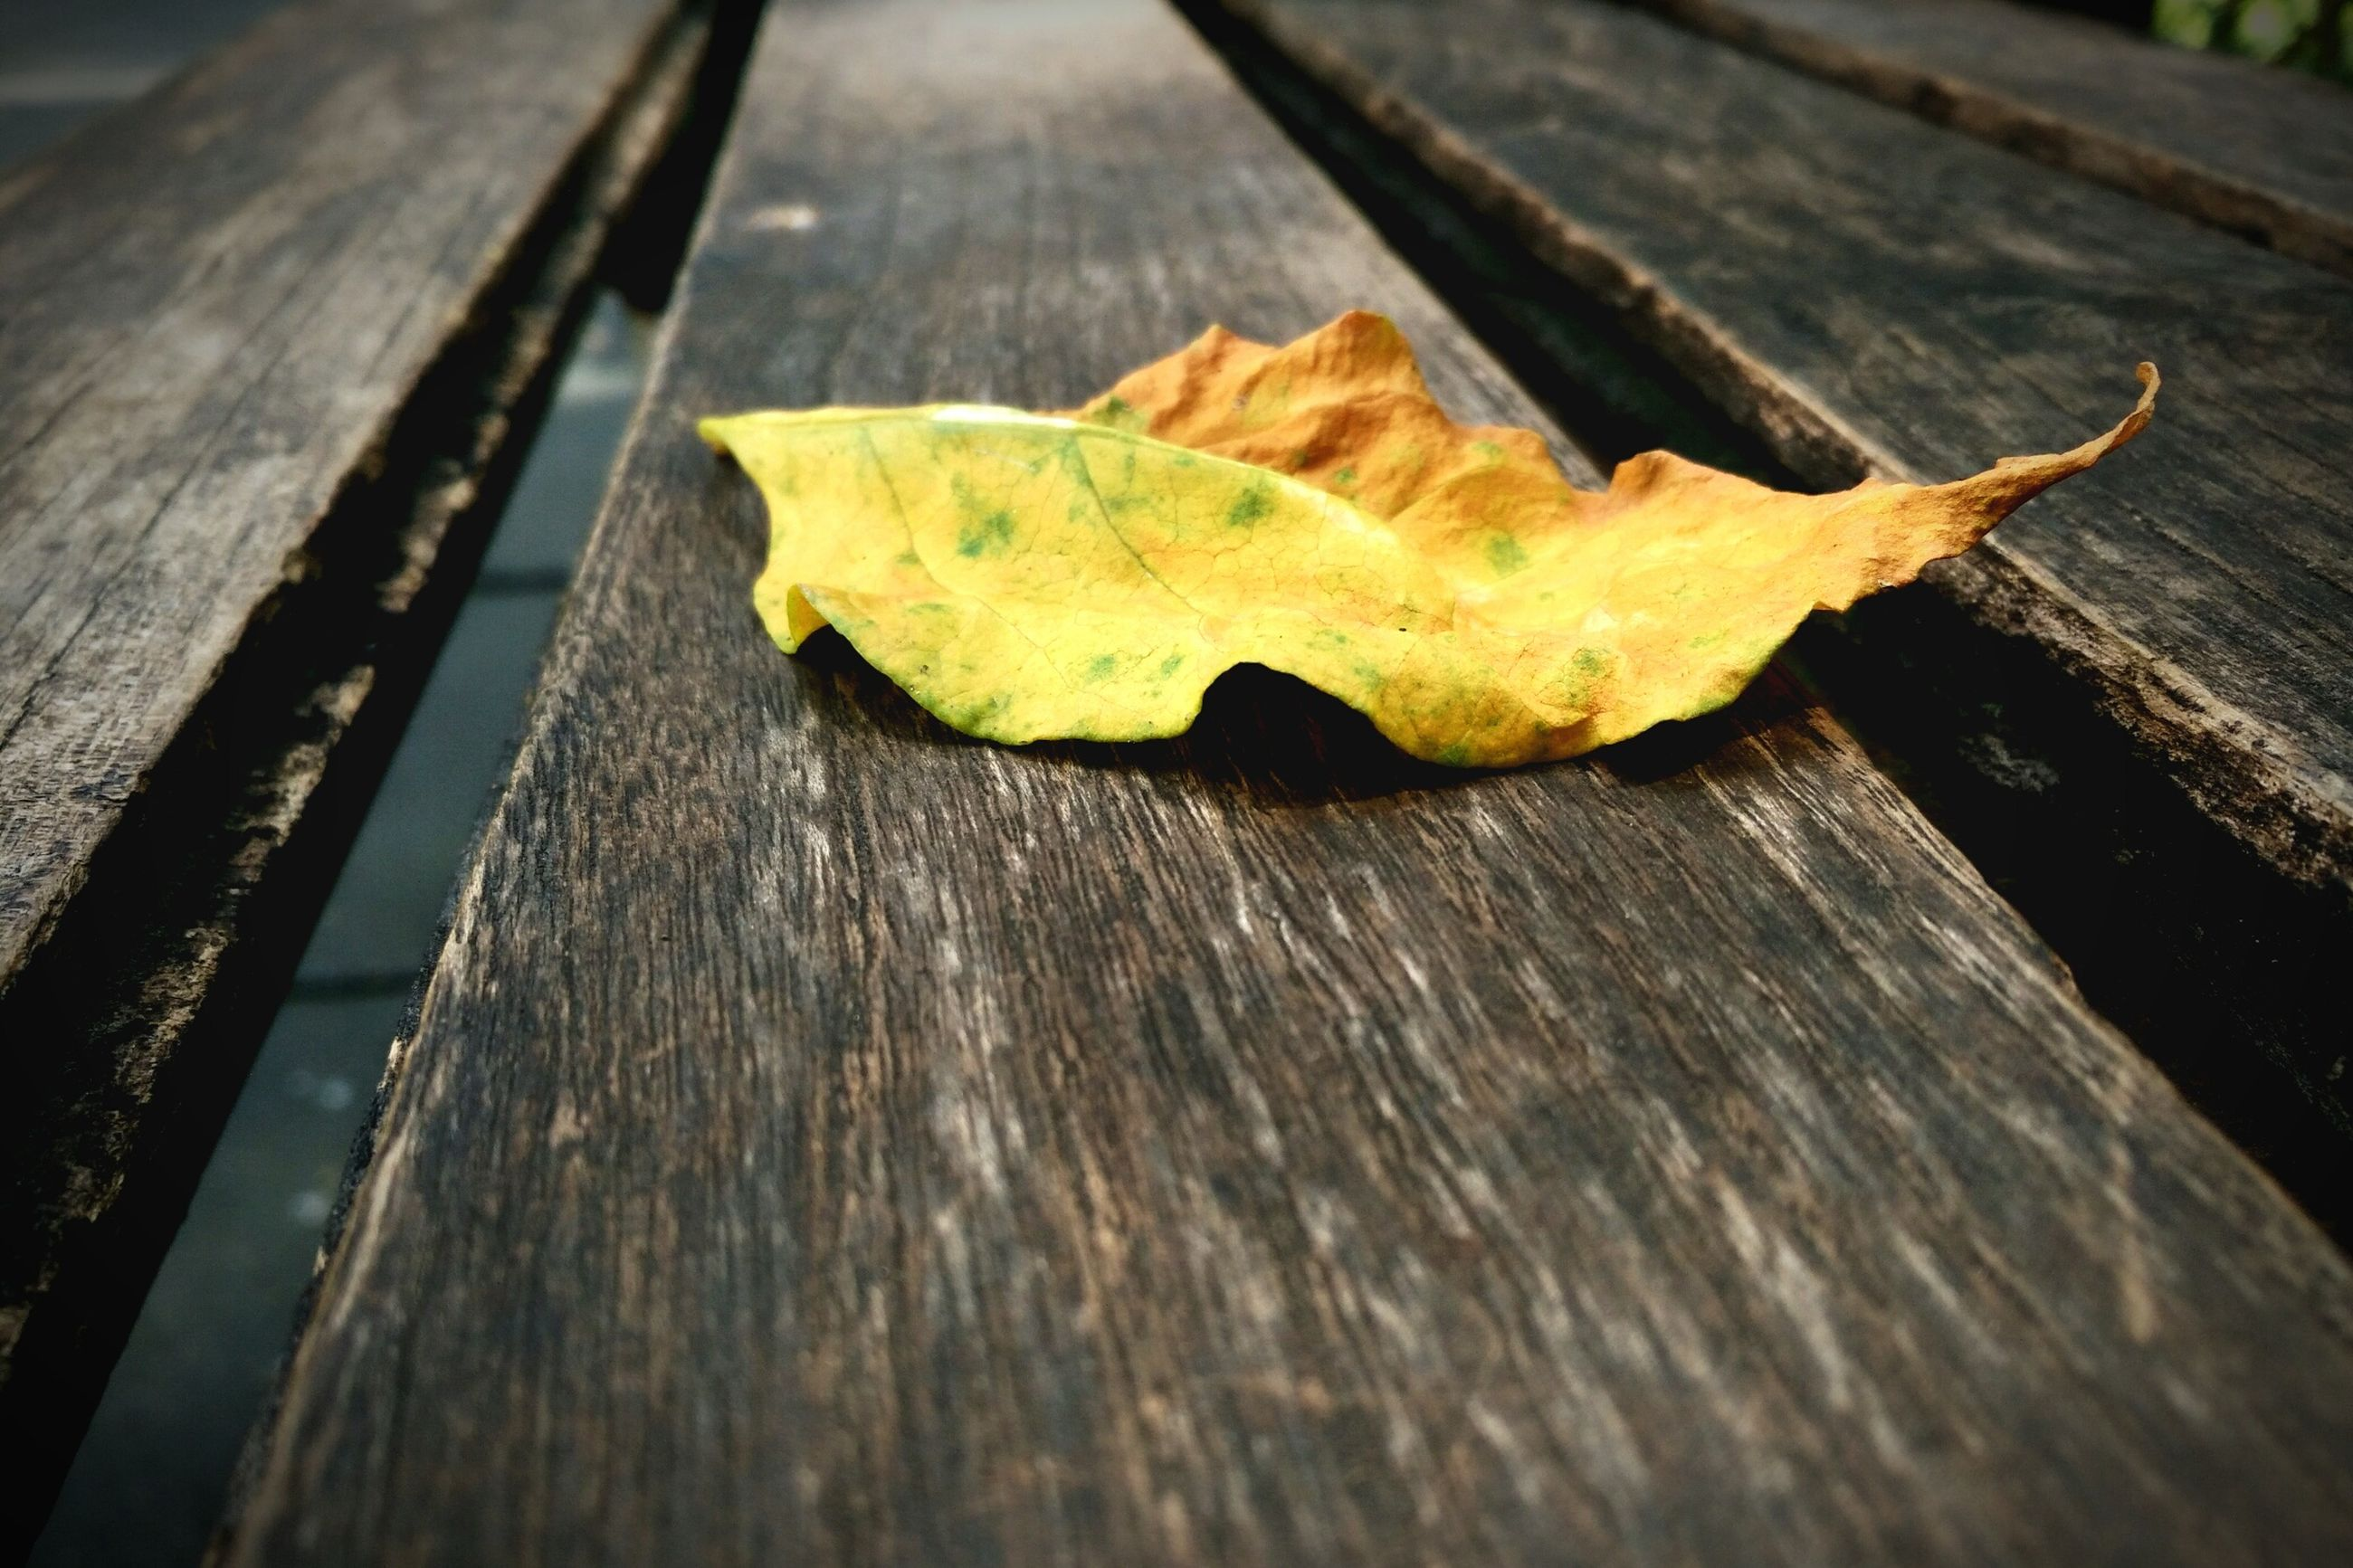 leaf, wooden, wood - material, autumn, change, dry, high angle view, plank, season, yellow, single object, natural condition, nature, water, fallen leaf, boardwalk, surface level, wood, fallen, tranquility, day, wood paneling, fragility, no people